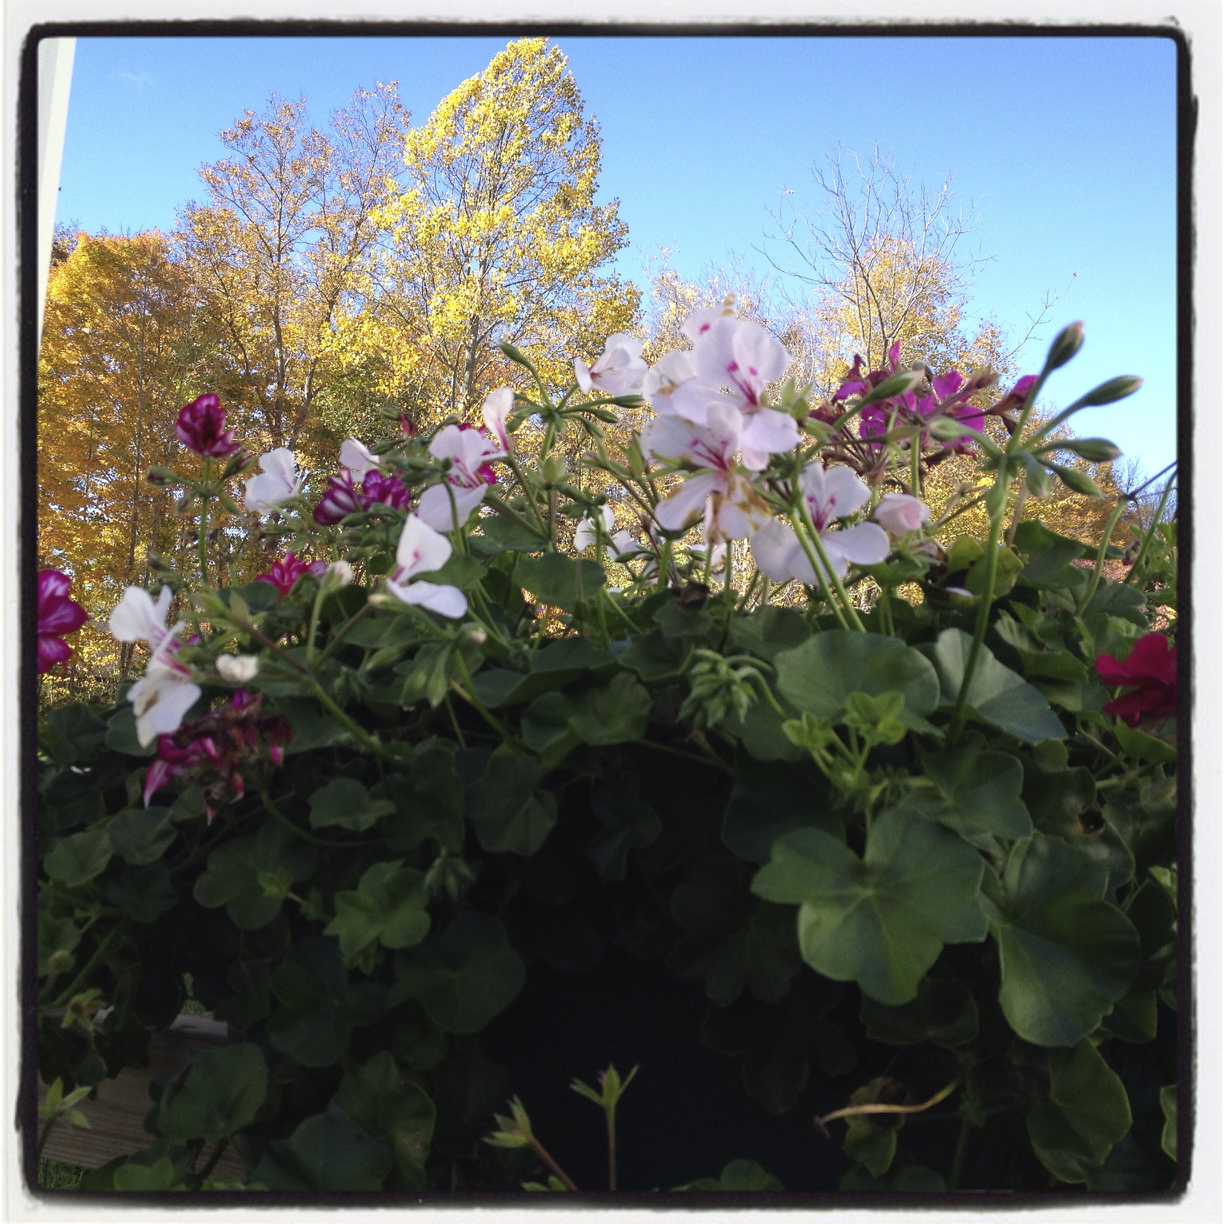 The geraniums did not get the memo that it is Fall!